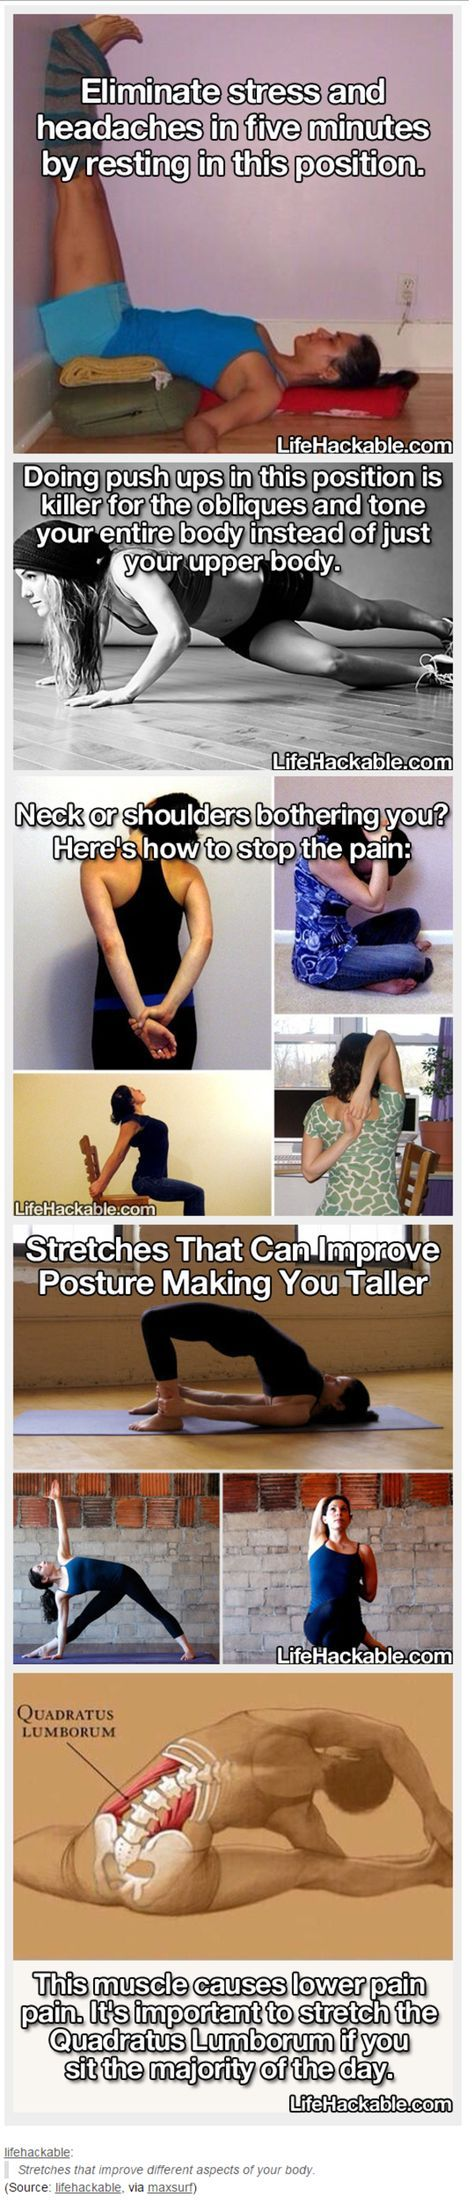 Stretches that improve different aspects of your body | Life Hacks | Know Your Meme